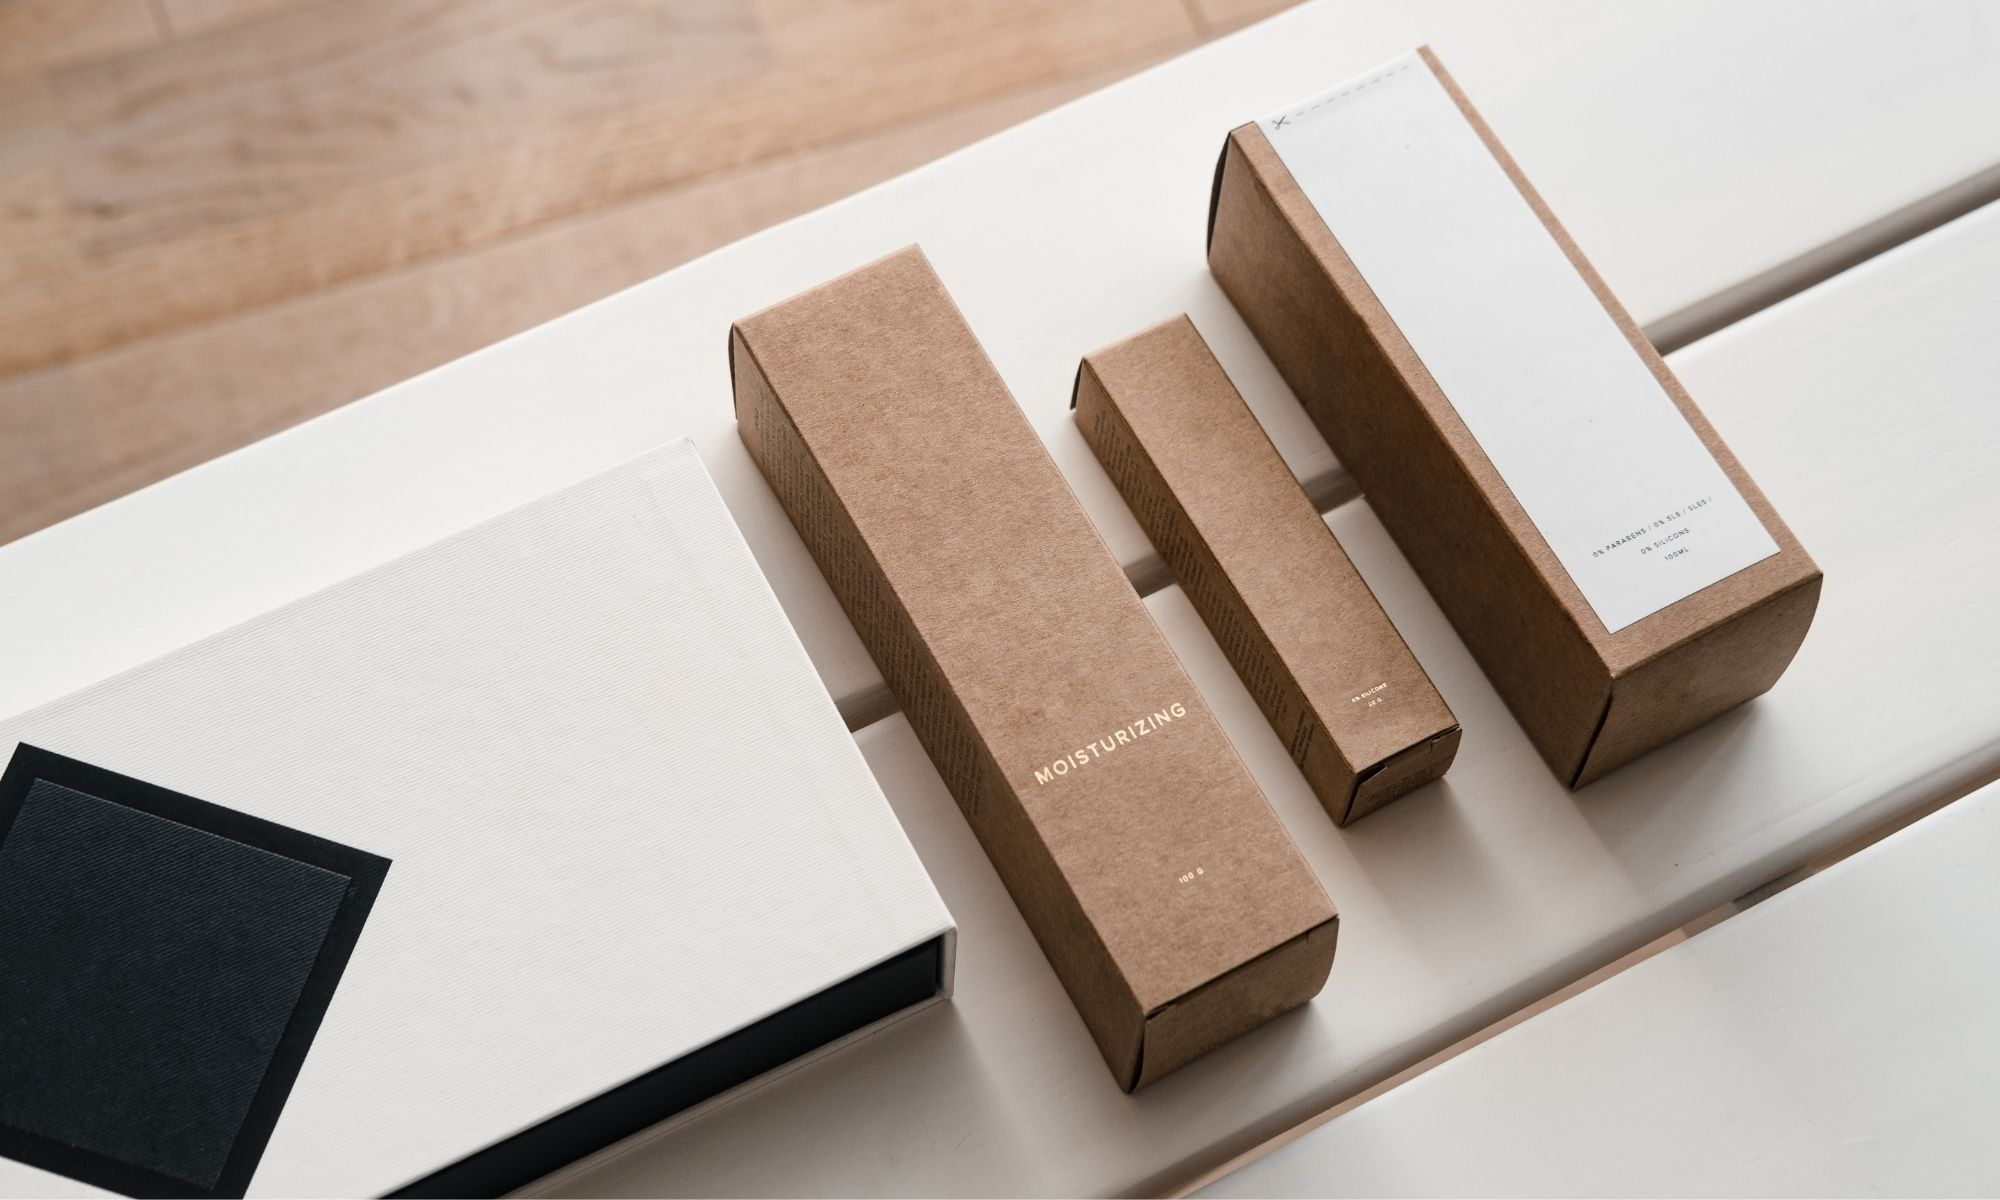 How To Redesign Product Packaging Effectively